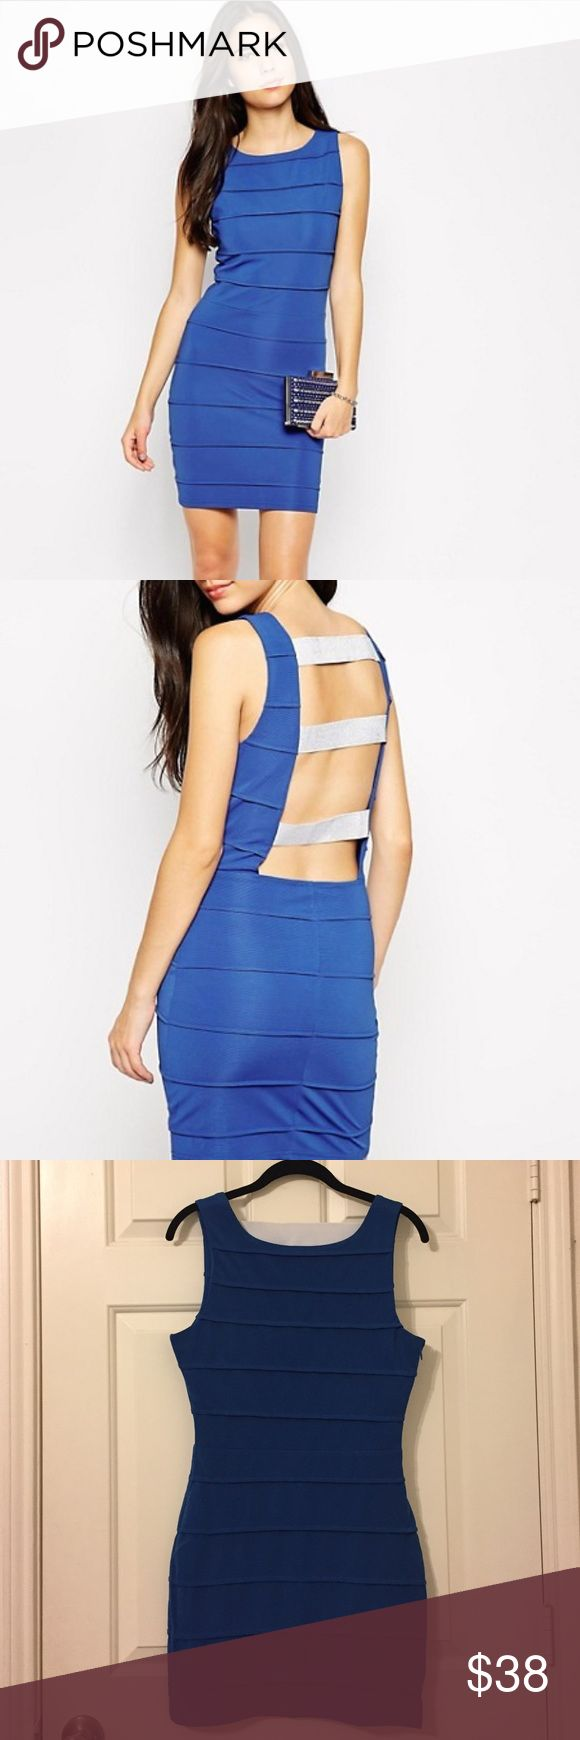 ASOS Rare London Blue Bandage Dress w/ Back Straps New with tags! Cobalt Blue colour, size medium/uk 10/eur 38/us 6. Made of 95% Polyester, 5% Elastane. A great addition to your wardrobe! ASOS Dresses Mini